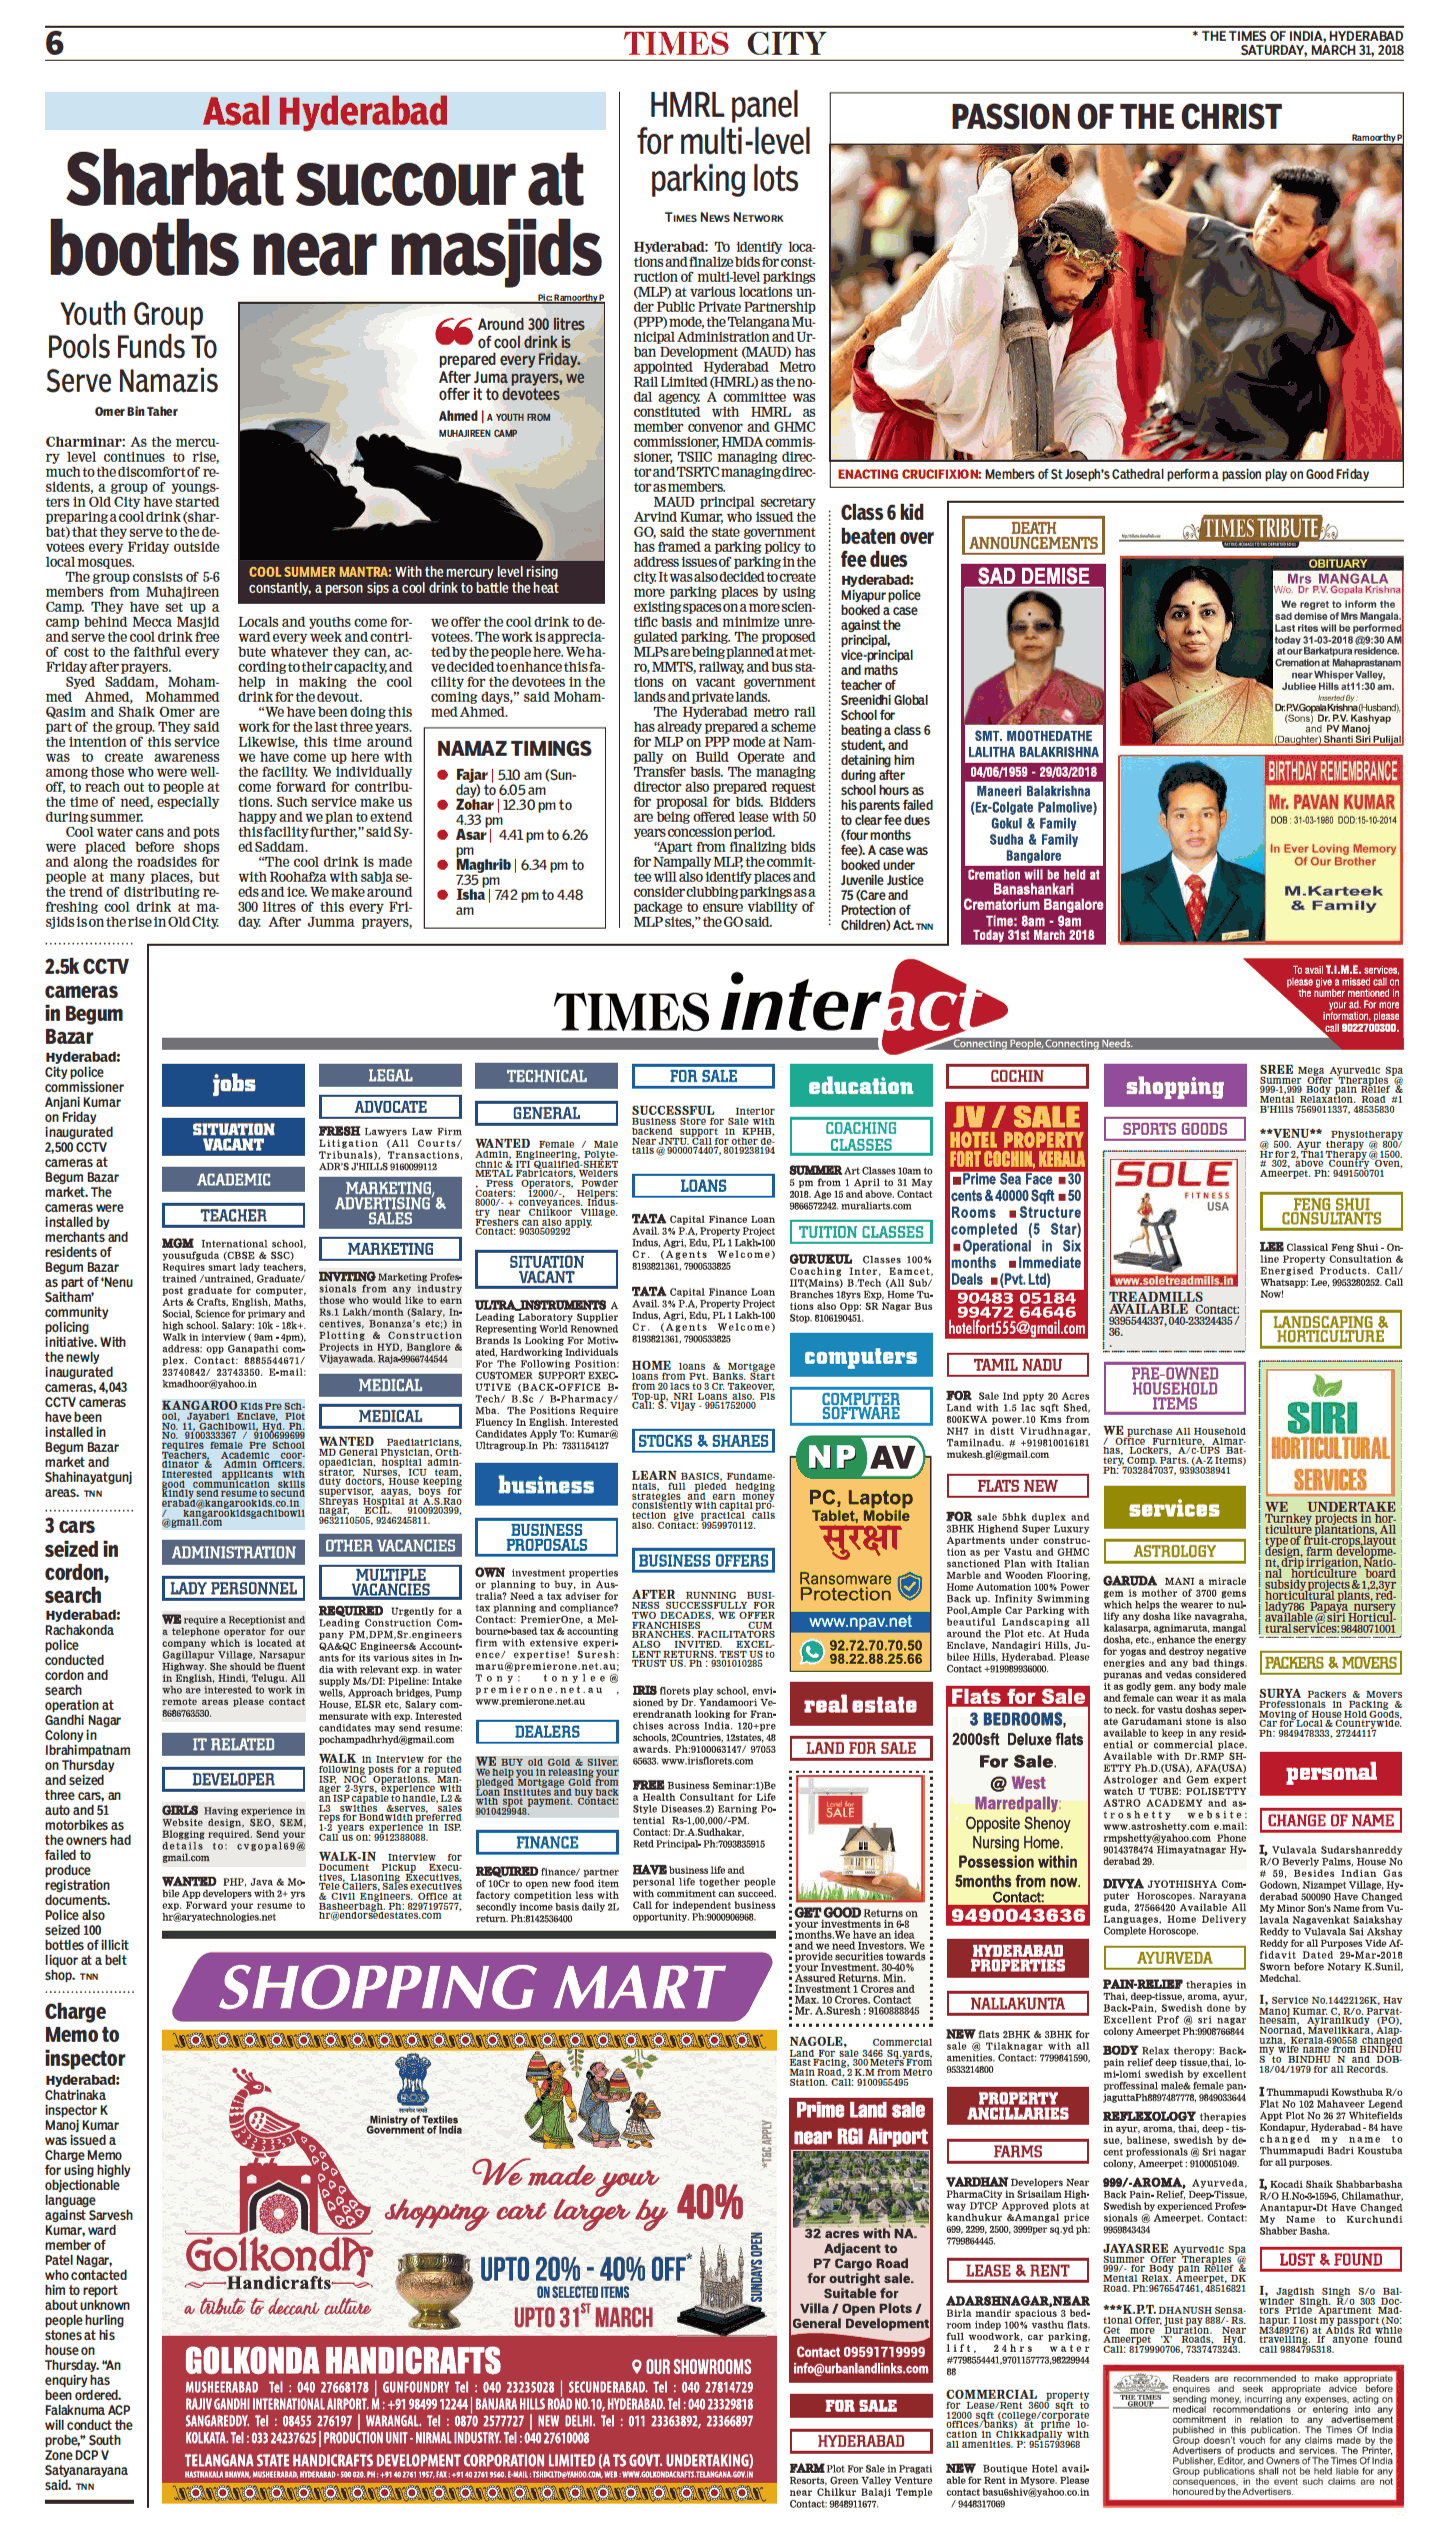 times of india advertisement of today's classified page [31-03-18]